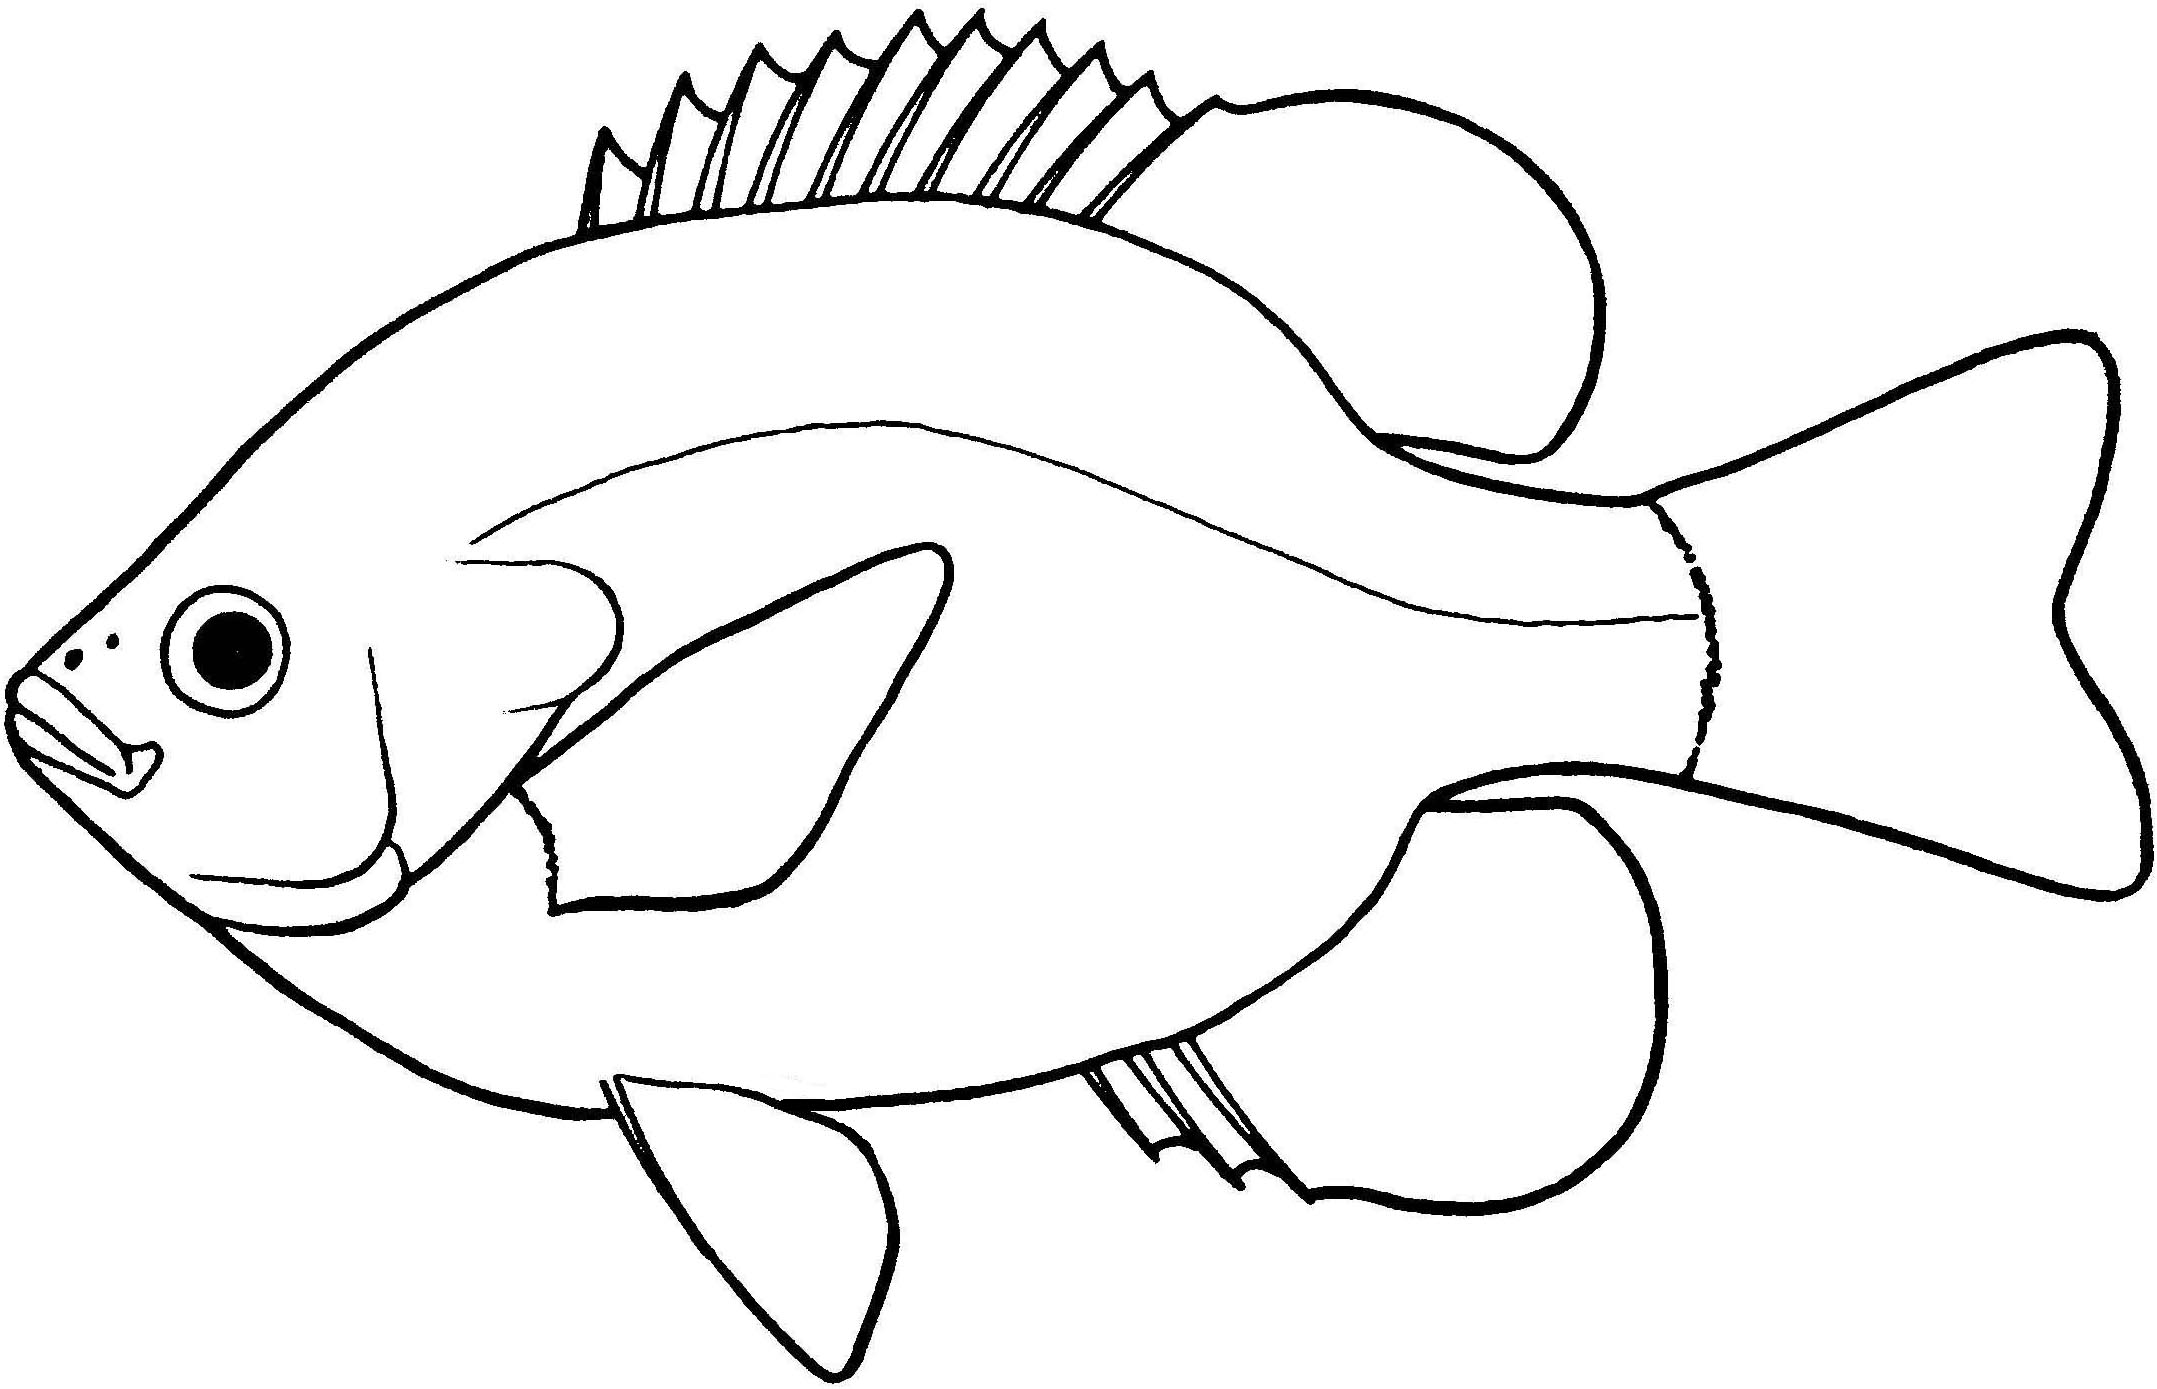 Fish outline drawing. Bass free download best